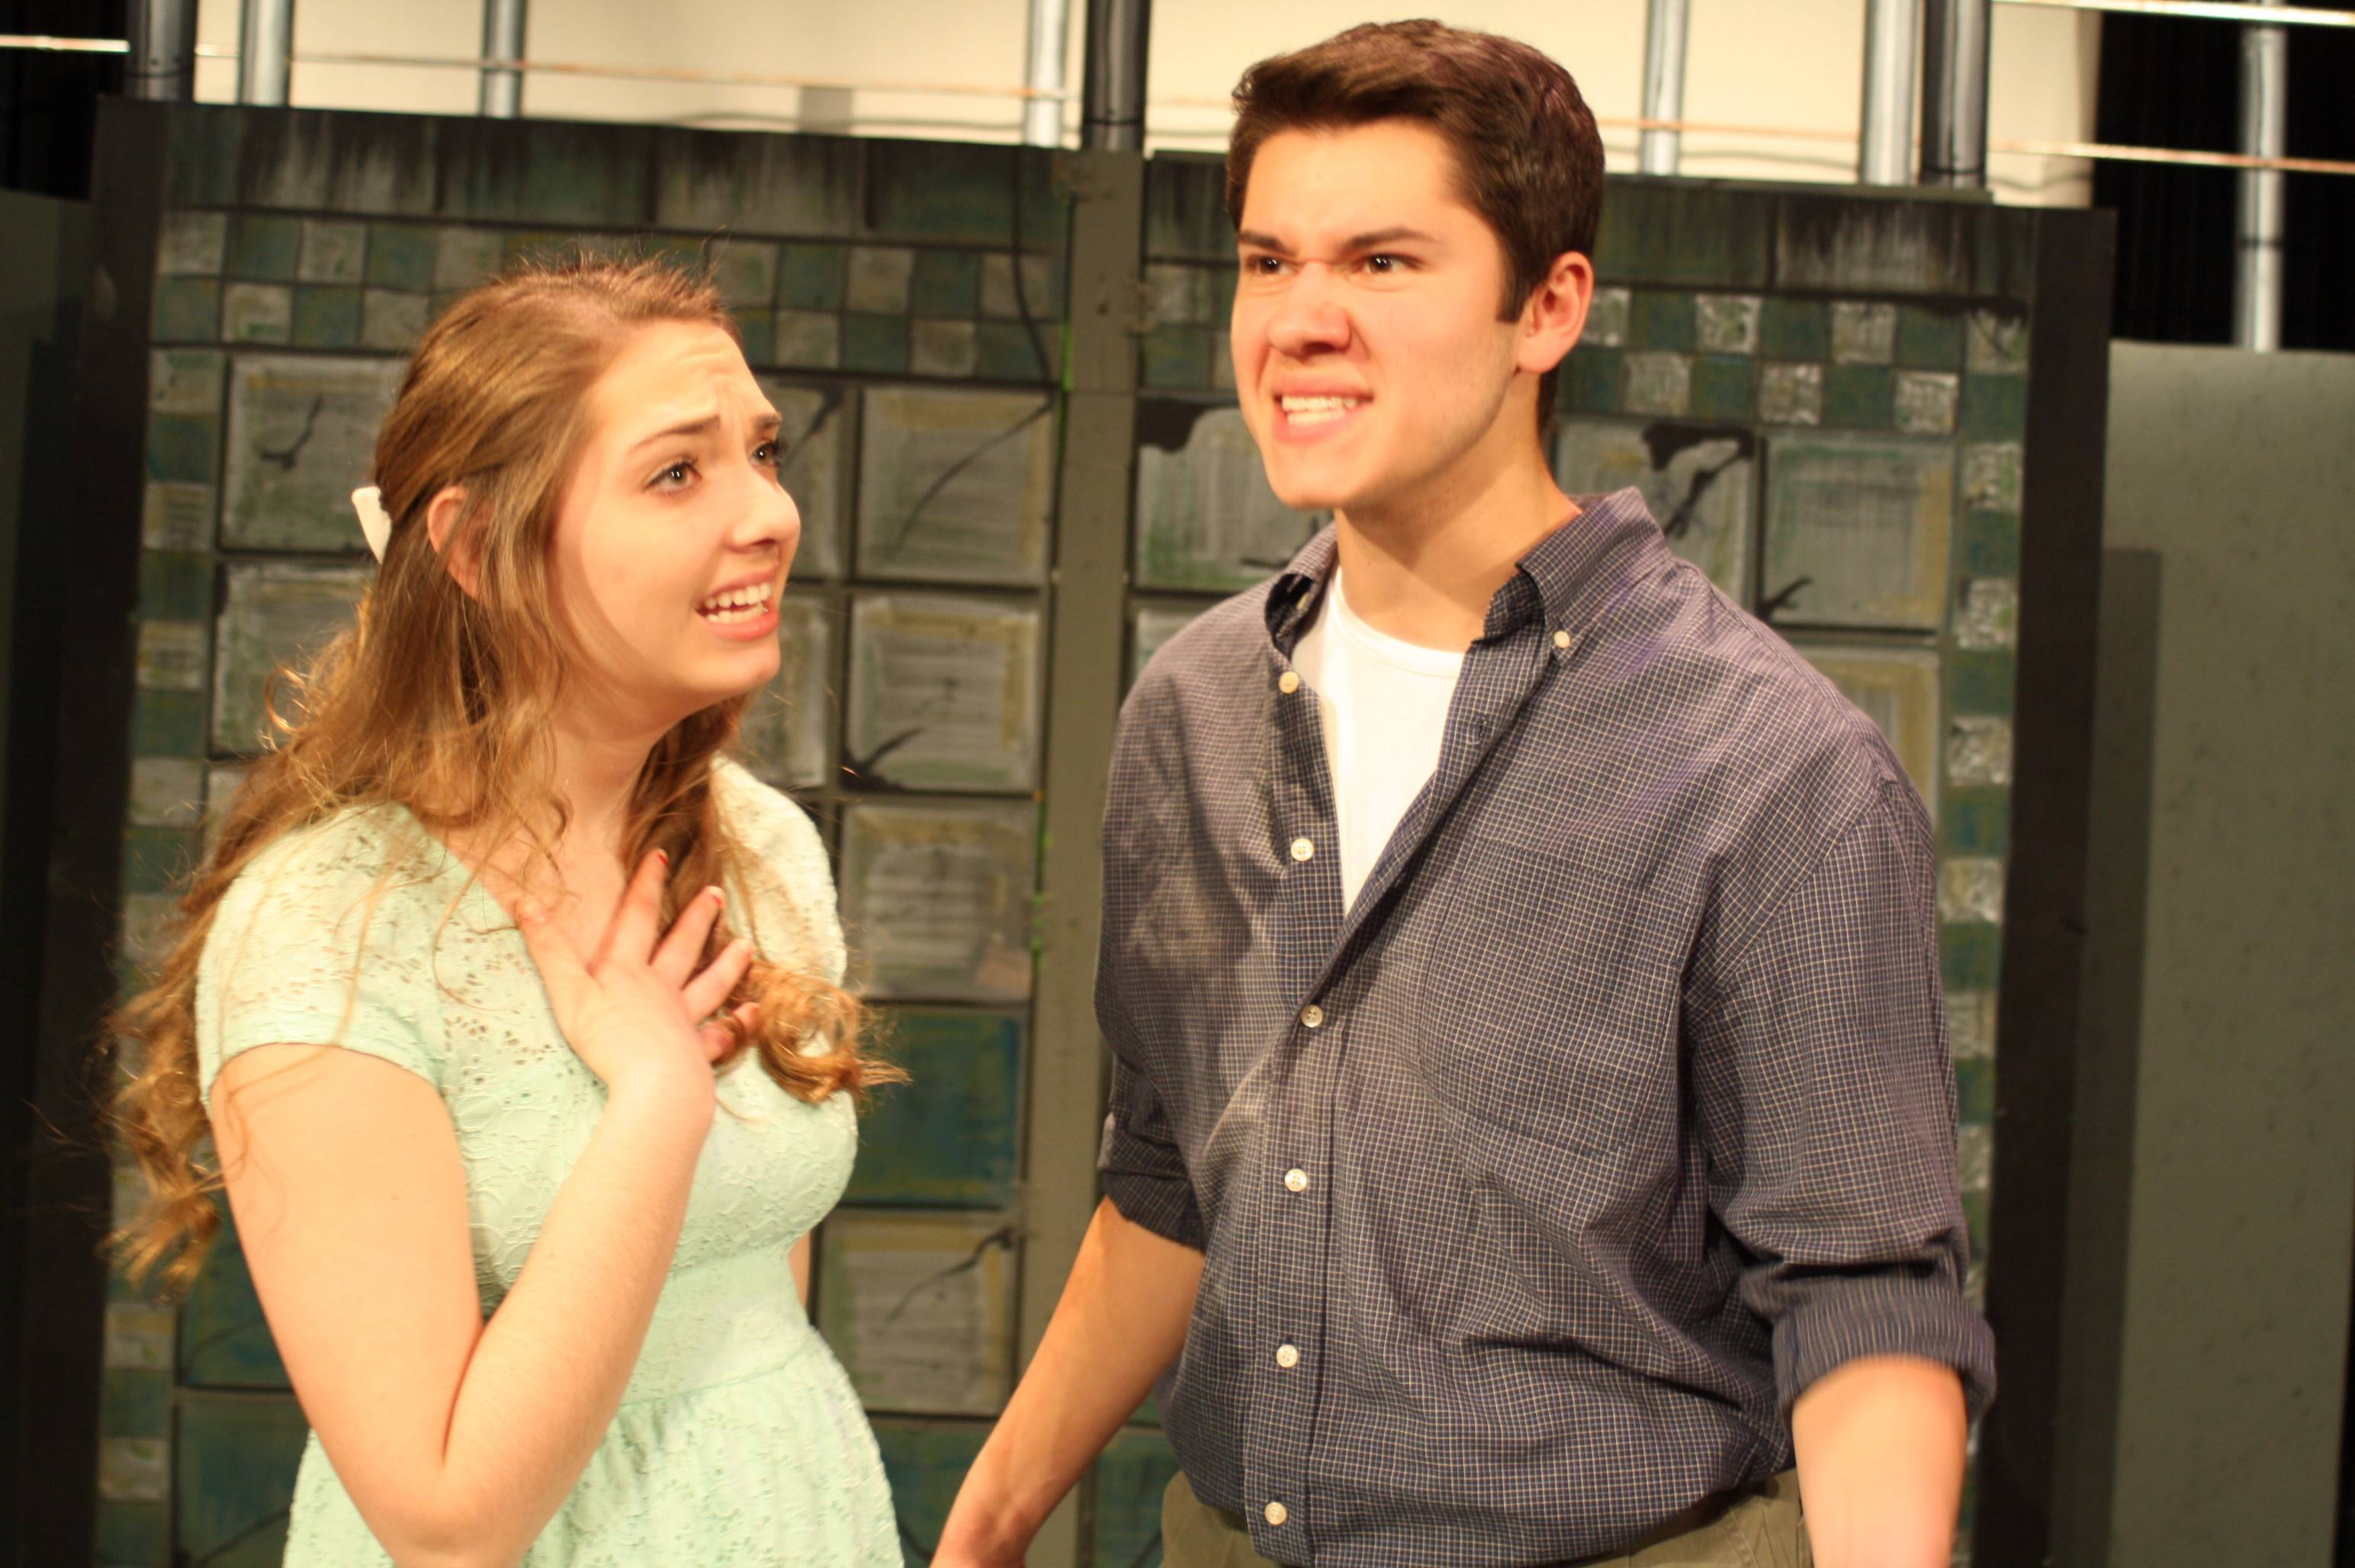 Emily Miller as Hope Cladwell pleads with Bobby Wozniak as Bobby Strong to stop the revolution in Urinetown.